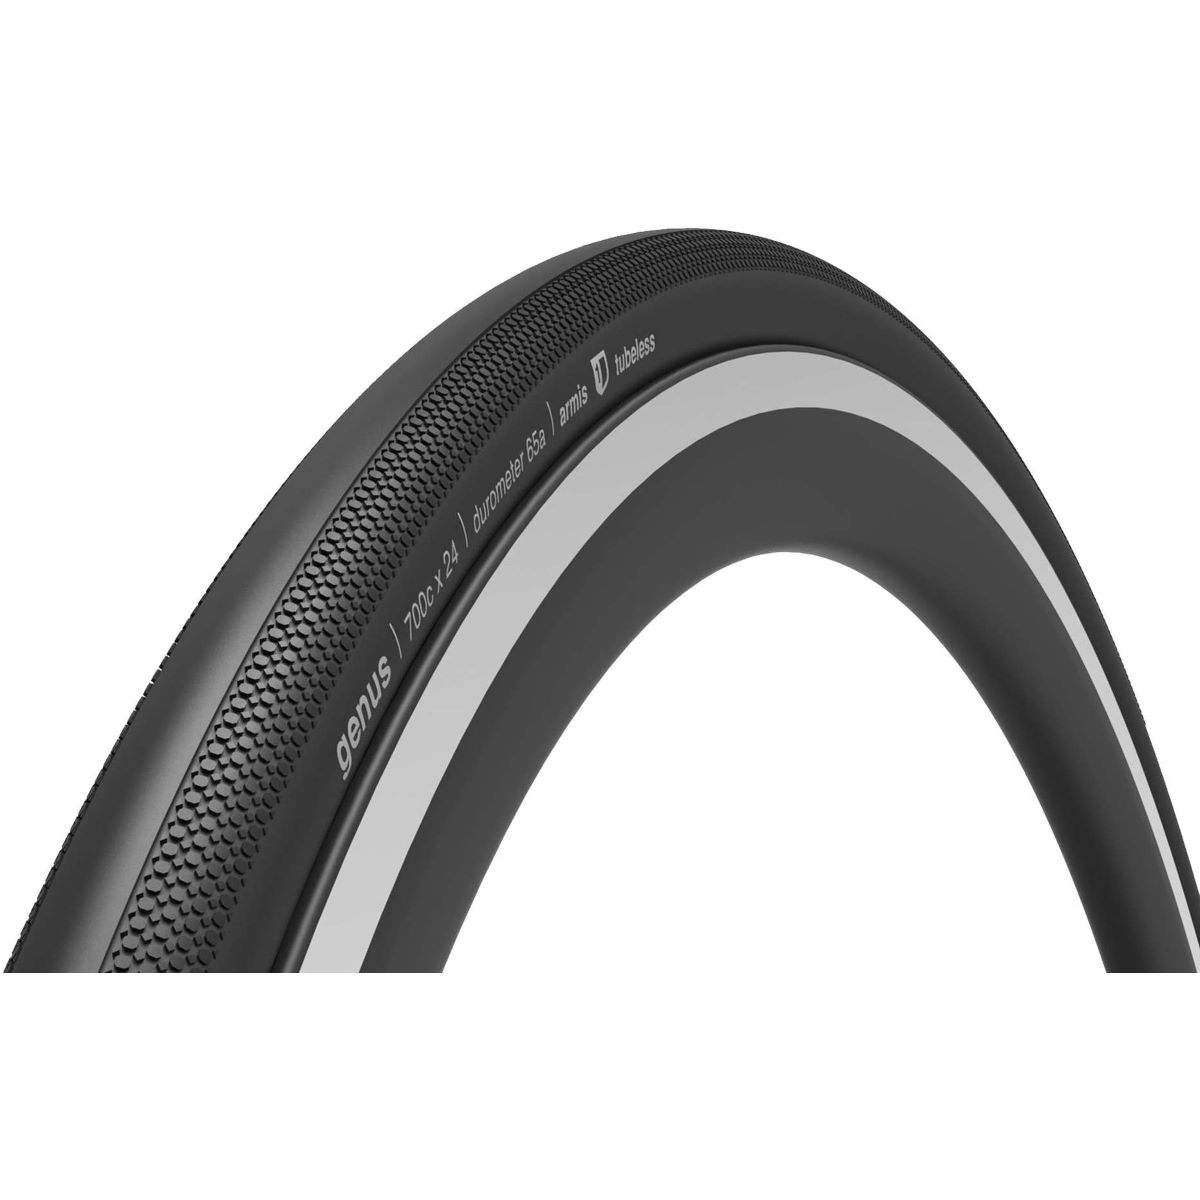 Ere Research Genus Tubeless 120TPI Folding Road Tyre - Cubiertas